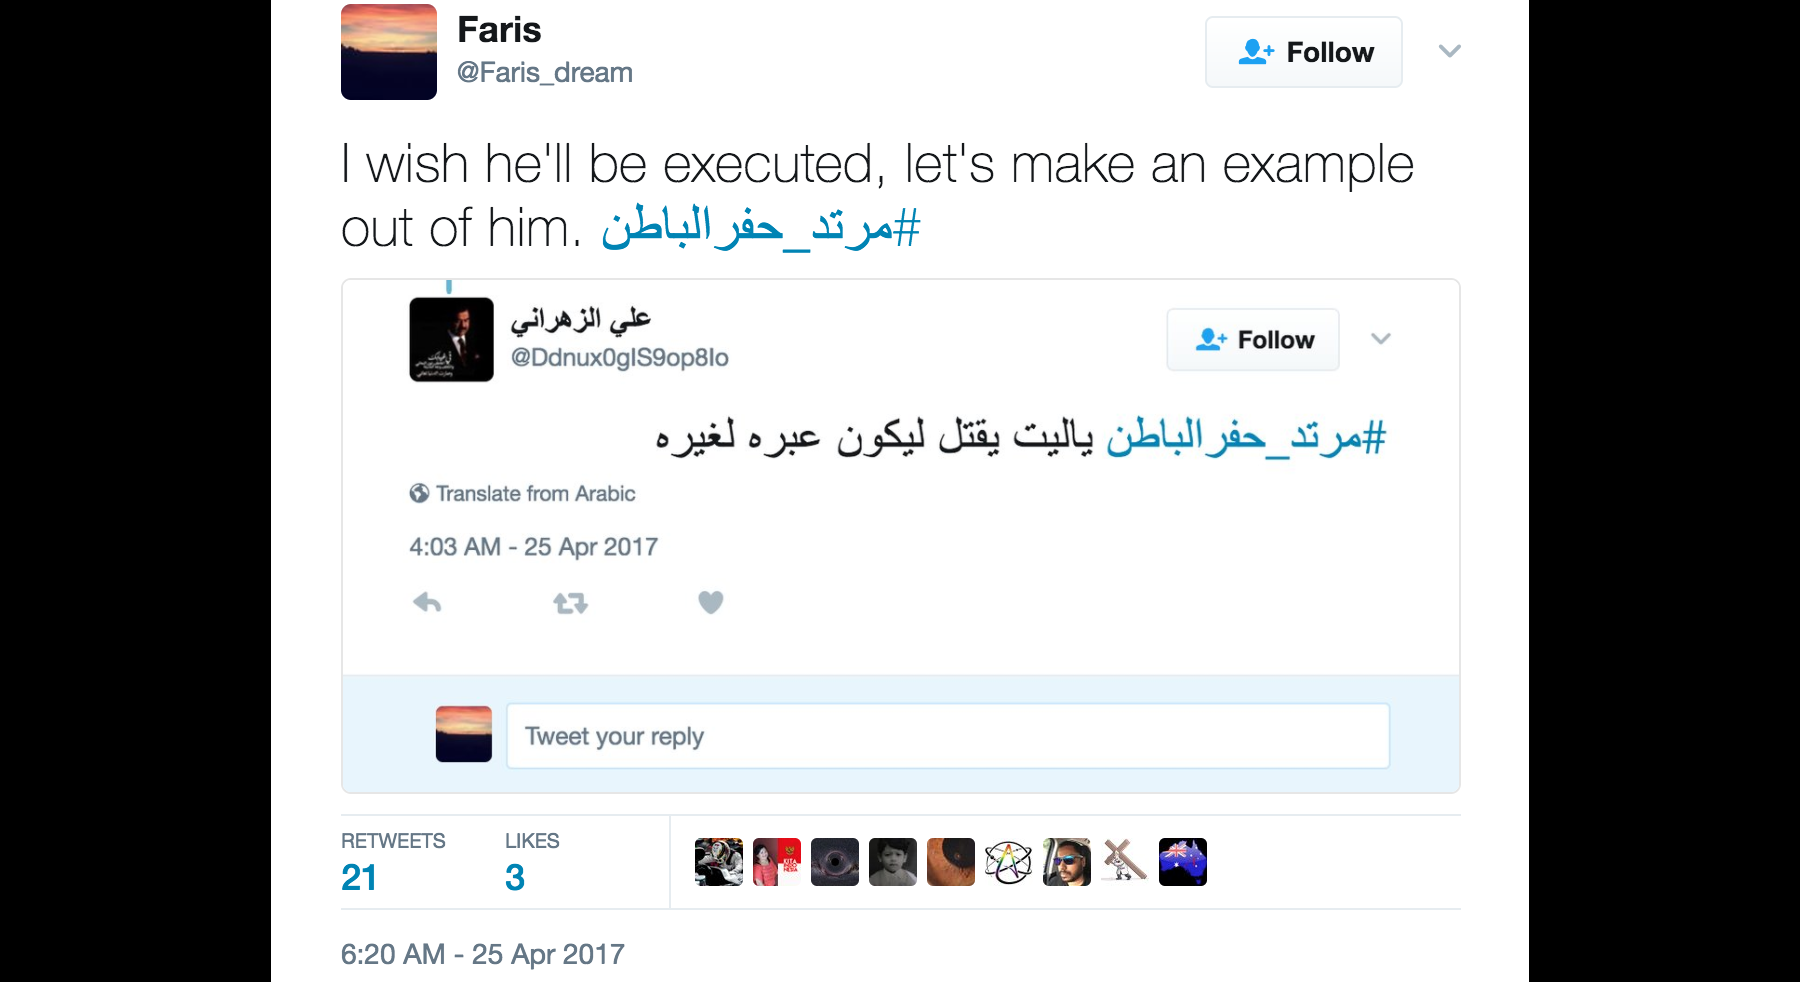 This tweet, translated by @Faris_dream, is one example of someone applauding the man's death sentence.